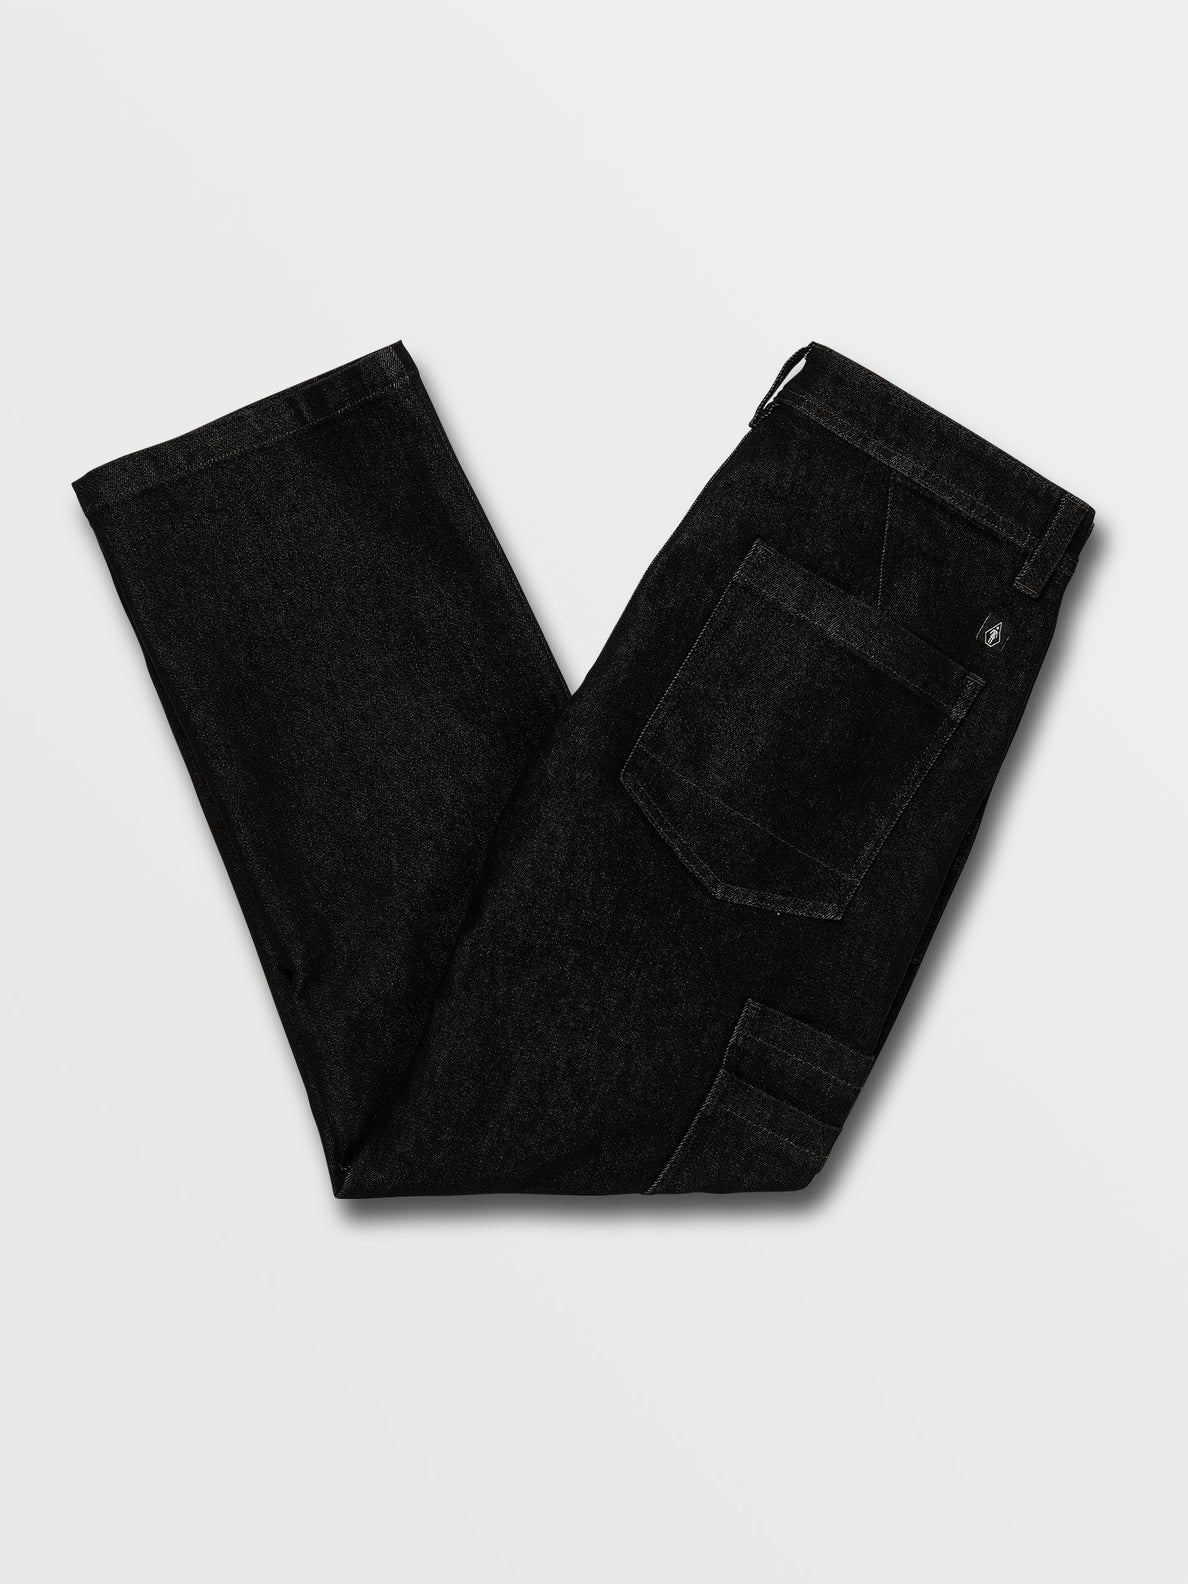 Volcom X Girl Skateboards Chino Pants - Black (A1132005_BLK) [B]